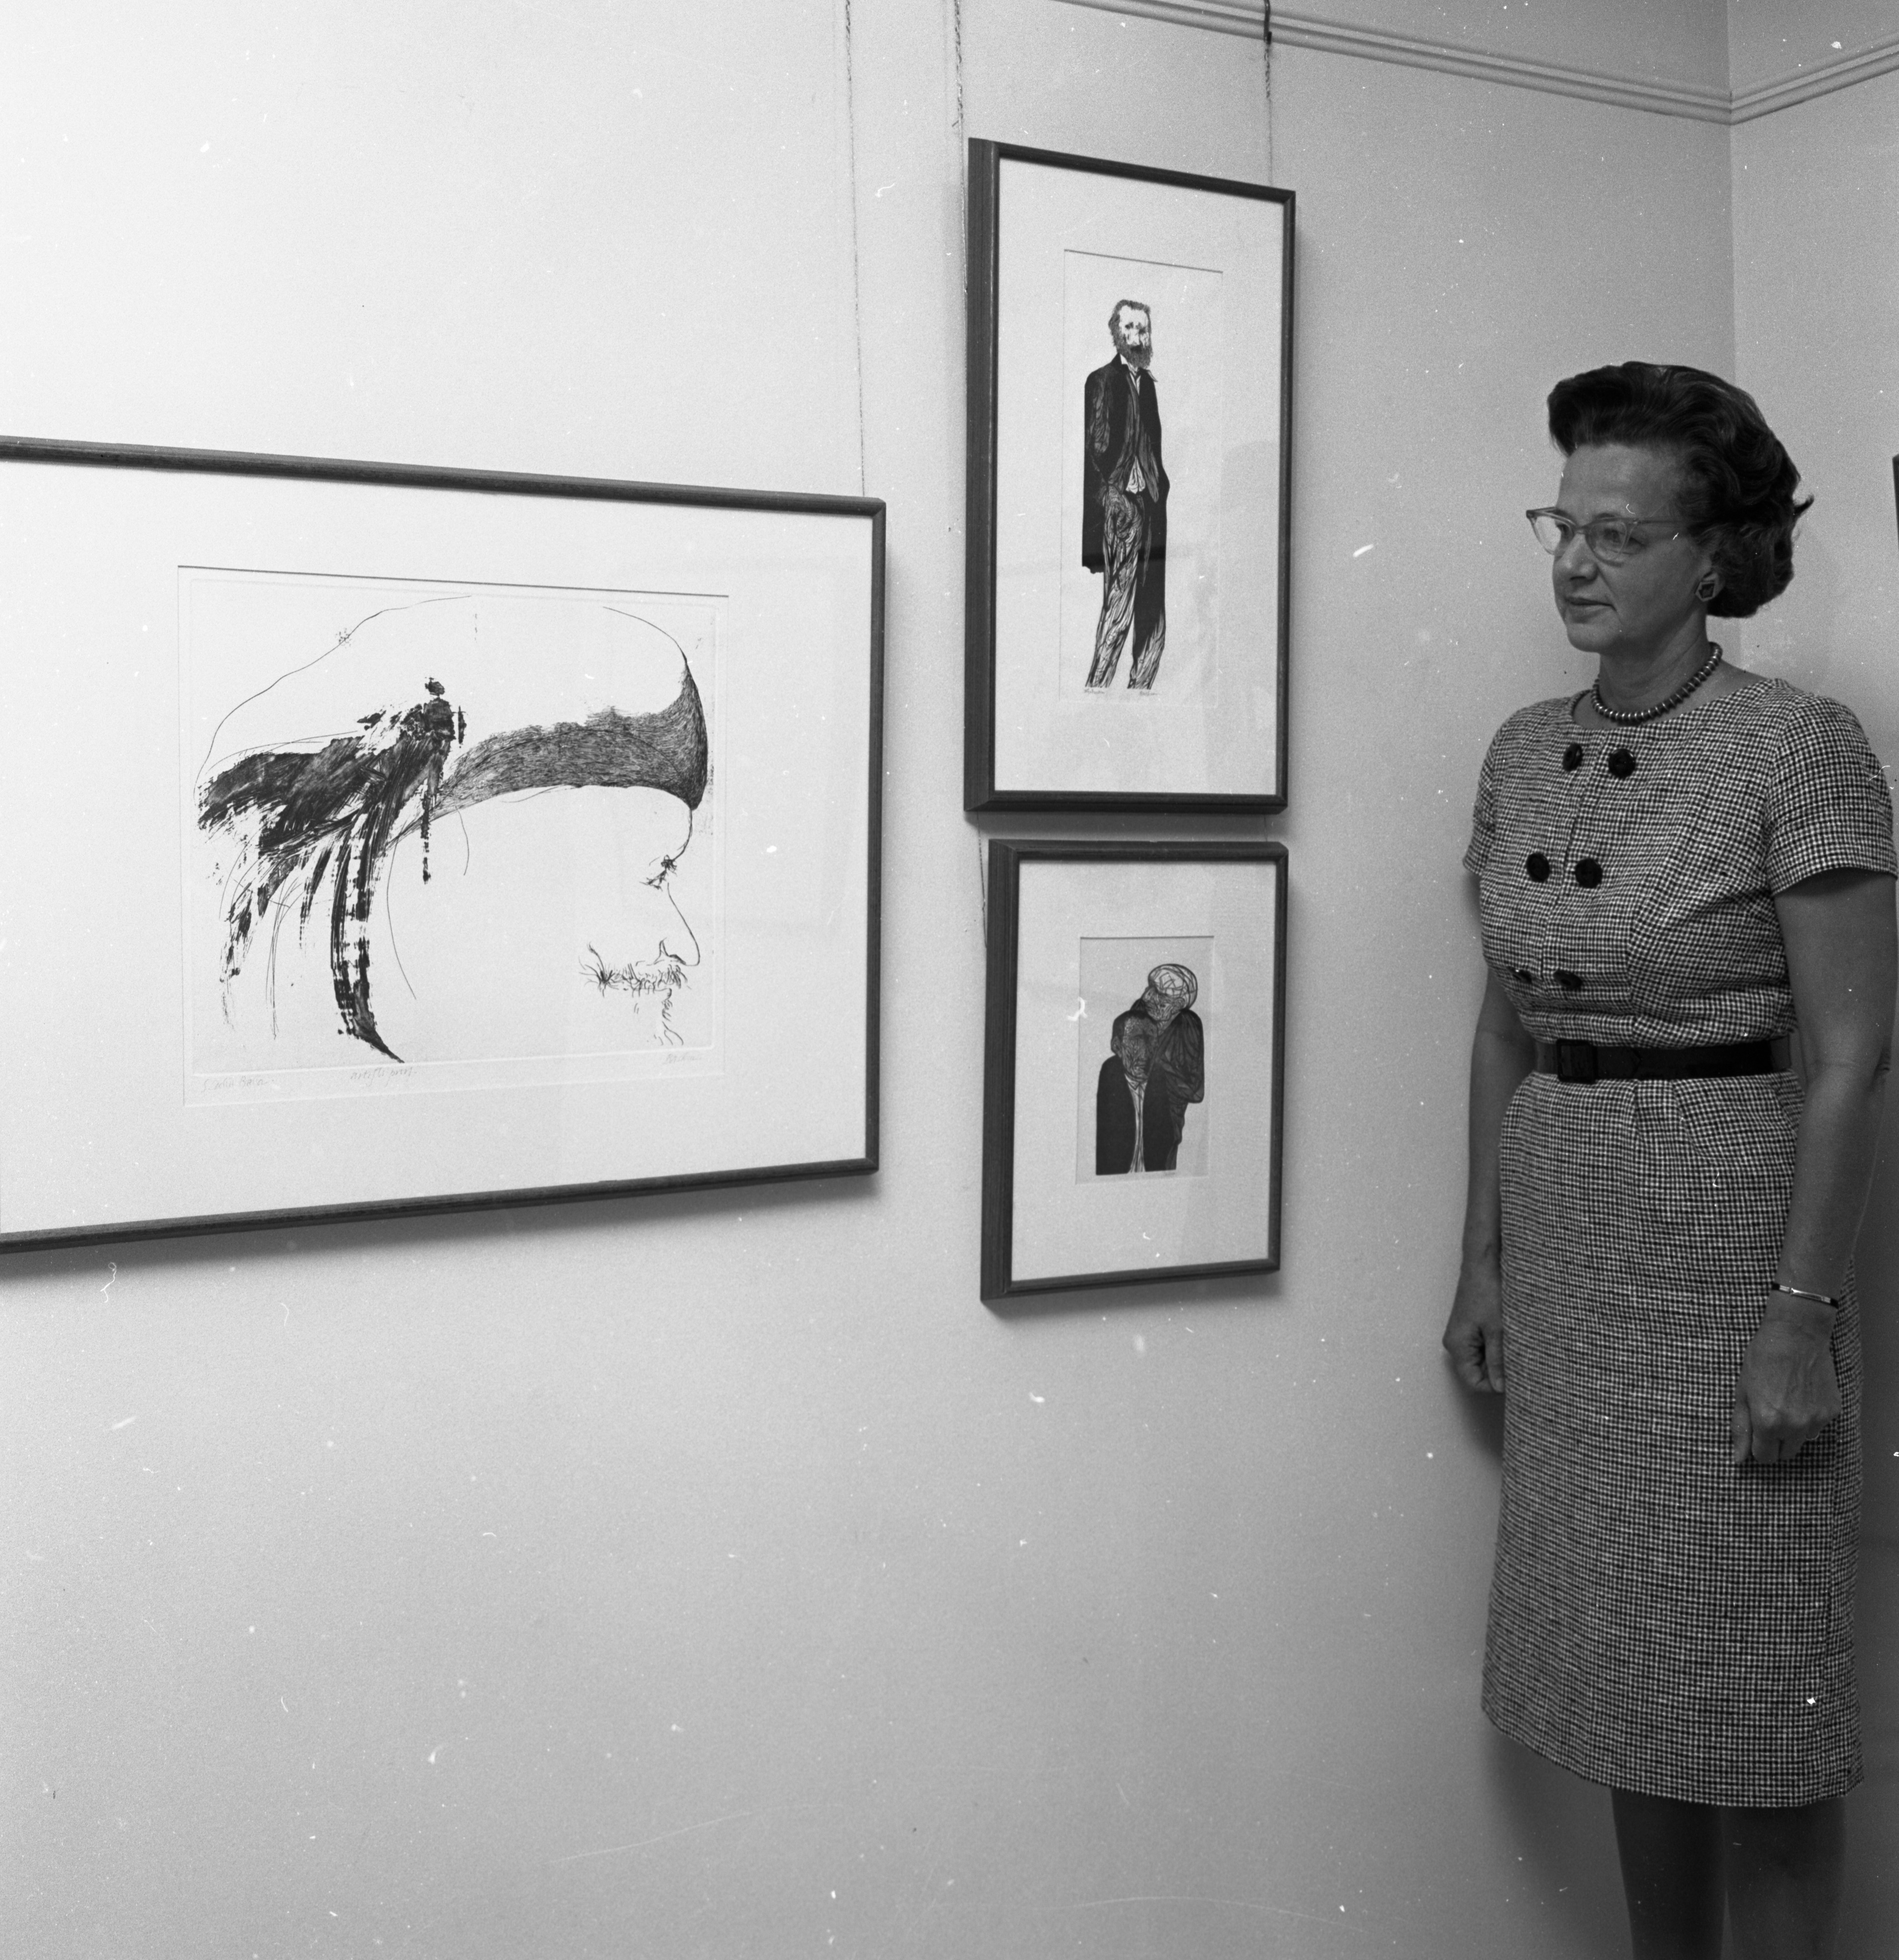 Forsythe Gallery Owner Jessie Winchell Forsythe Examines Etchings, September 1963 image